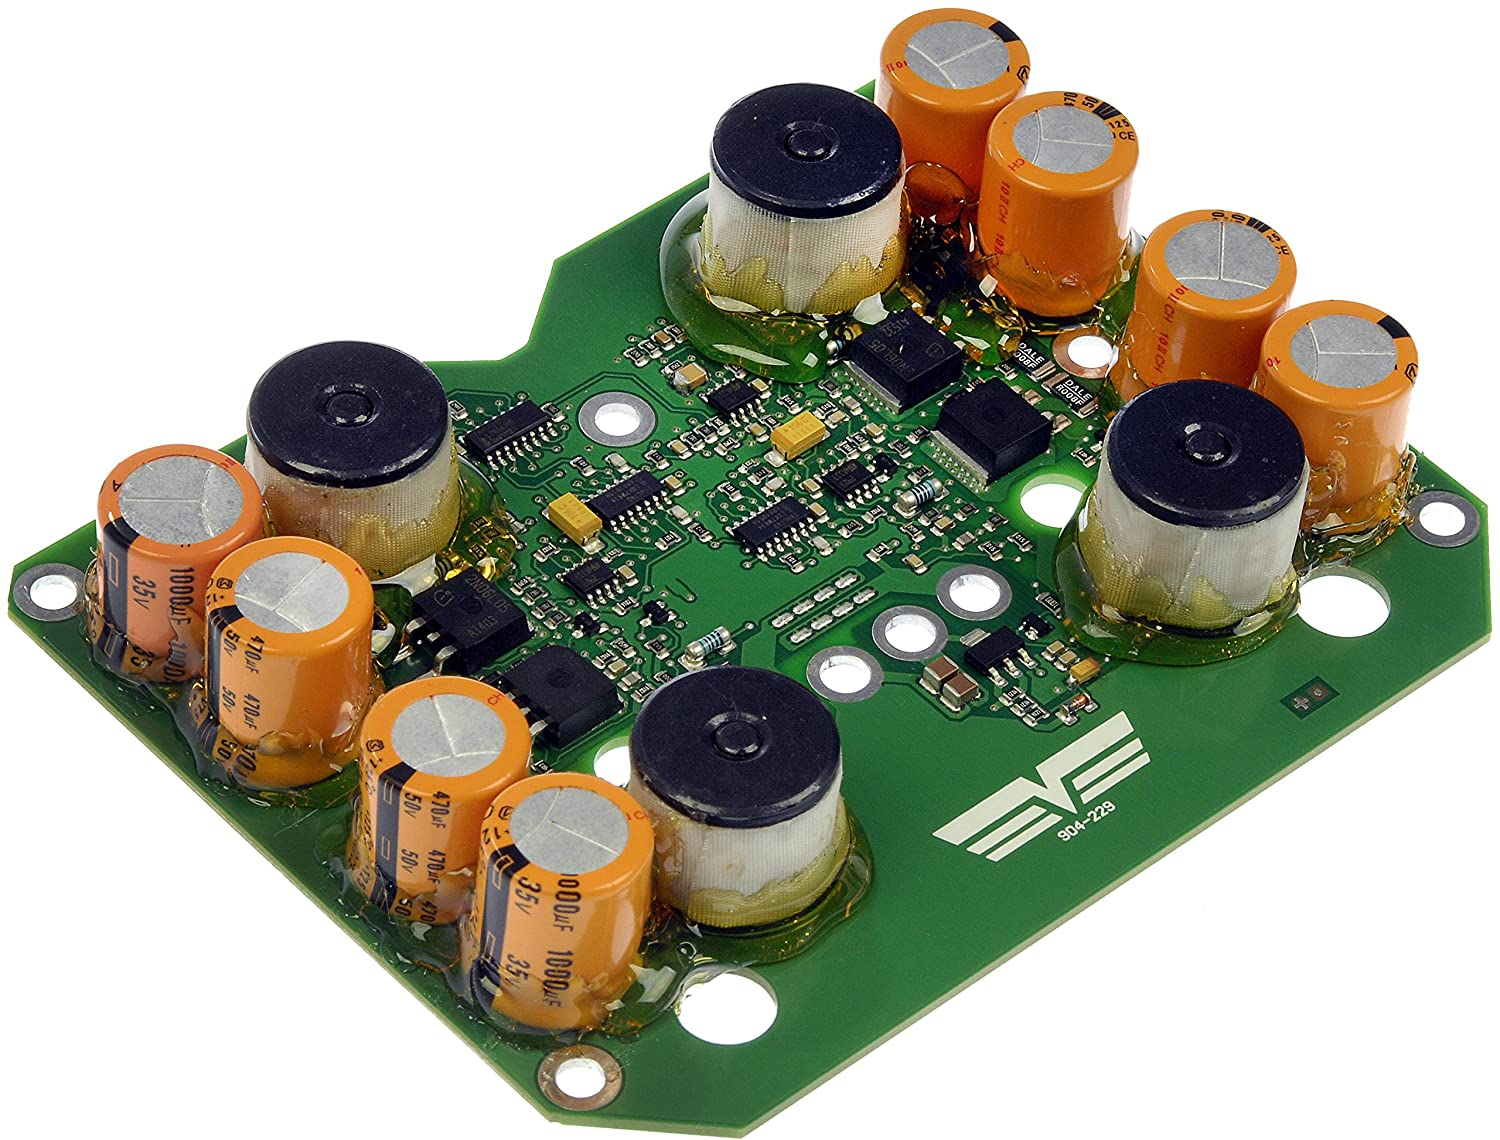 Dorman 904 229 Fuel Injection Control Module Automotive Repair Of A Circuit Board Used In Pc Computer Royalty Free Clip